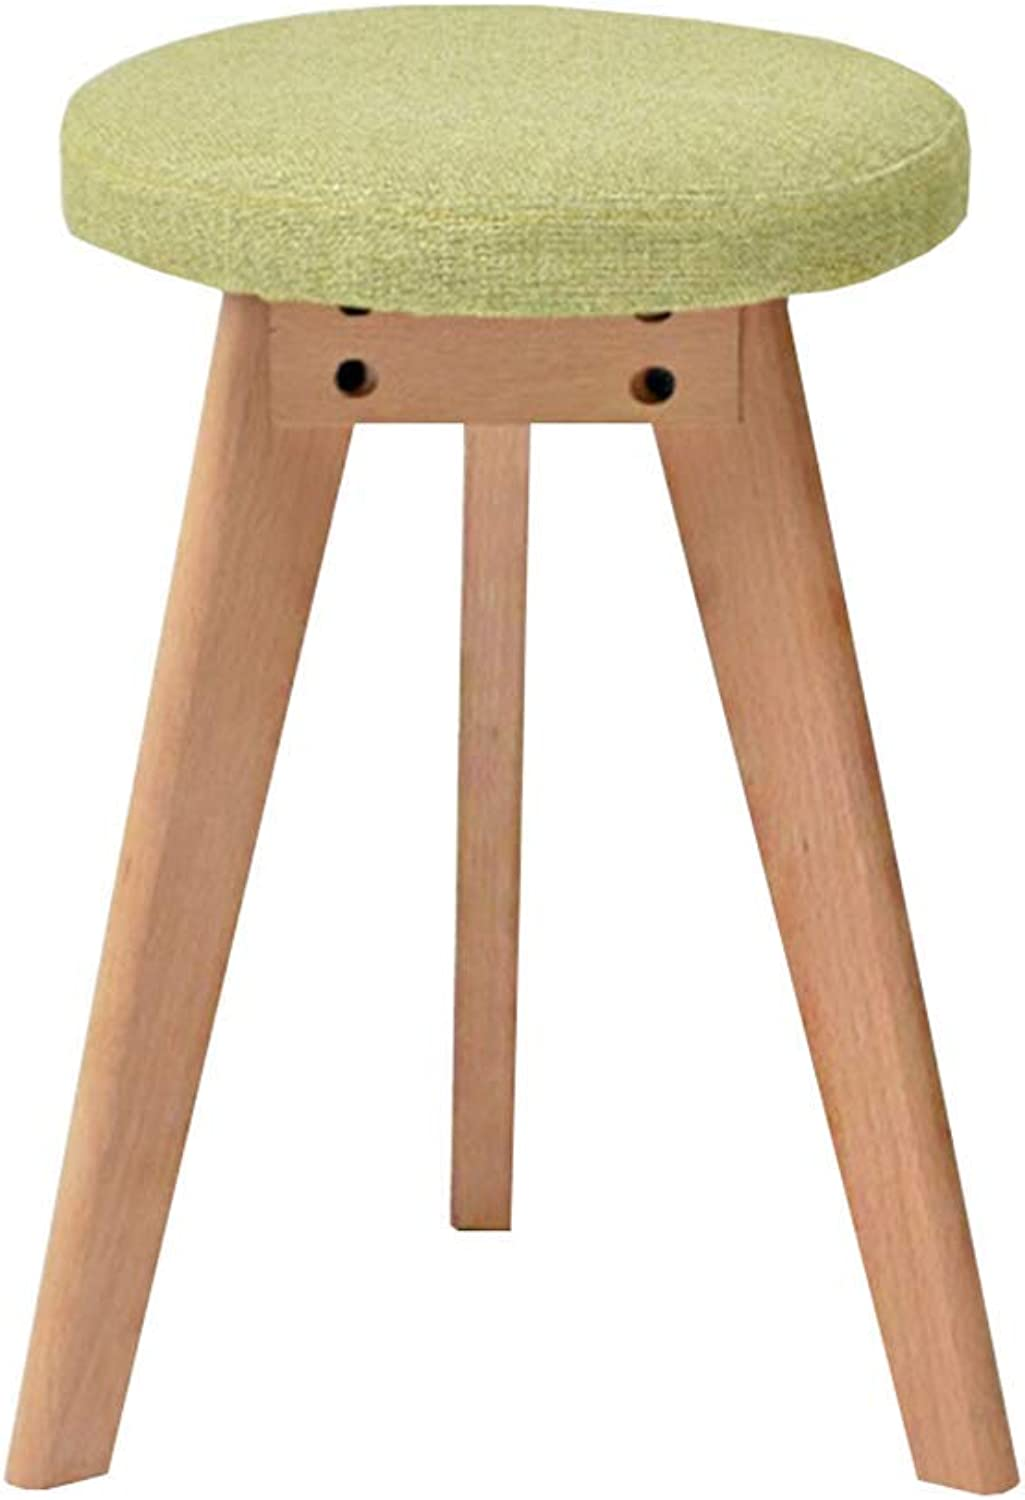 ZHAOYONGLI Stool Modern Minimalist Home Table Stool Fashion Nordic Small Bench Solid Wood Footstool Round Stool Creative Solid Durable Long Lasting (color   Matcha-Green, Size   40  45cm)